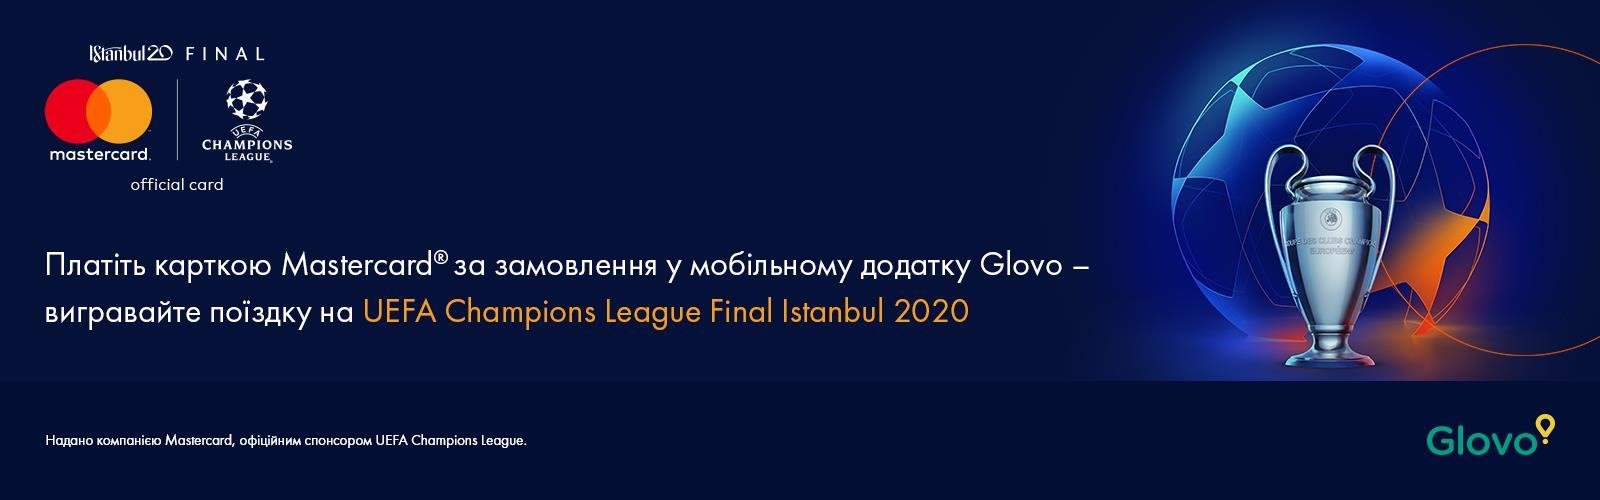 This is your chance to head to the UEFA Champions League Final Istanbul 2020! - photo - mtb.ua